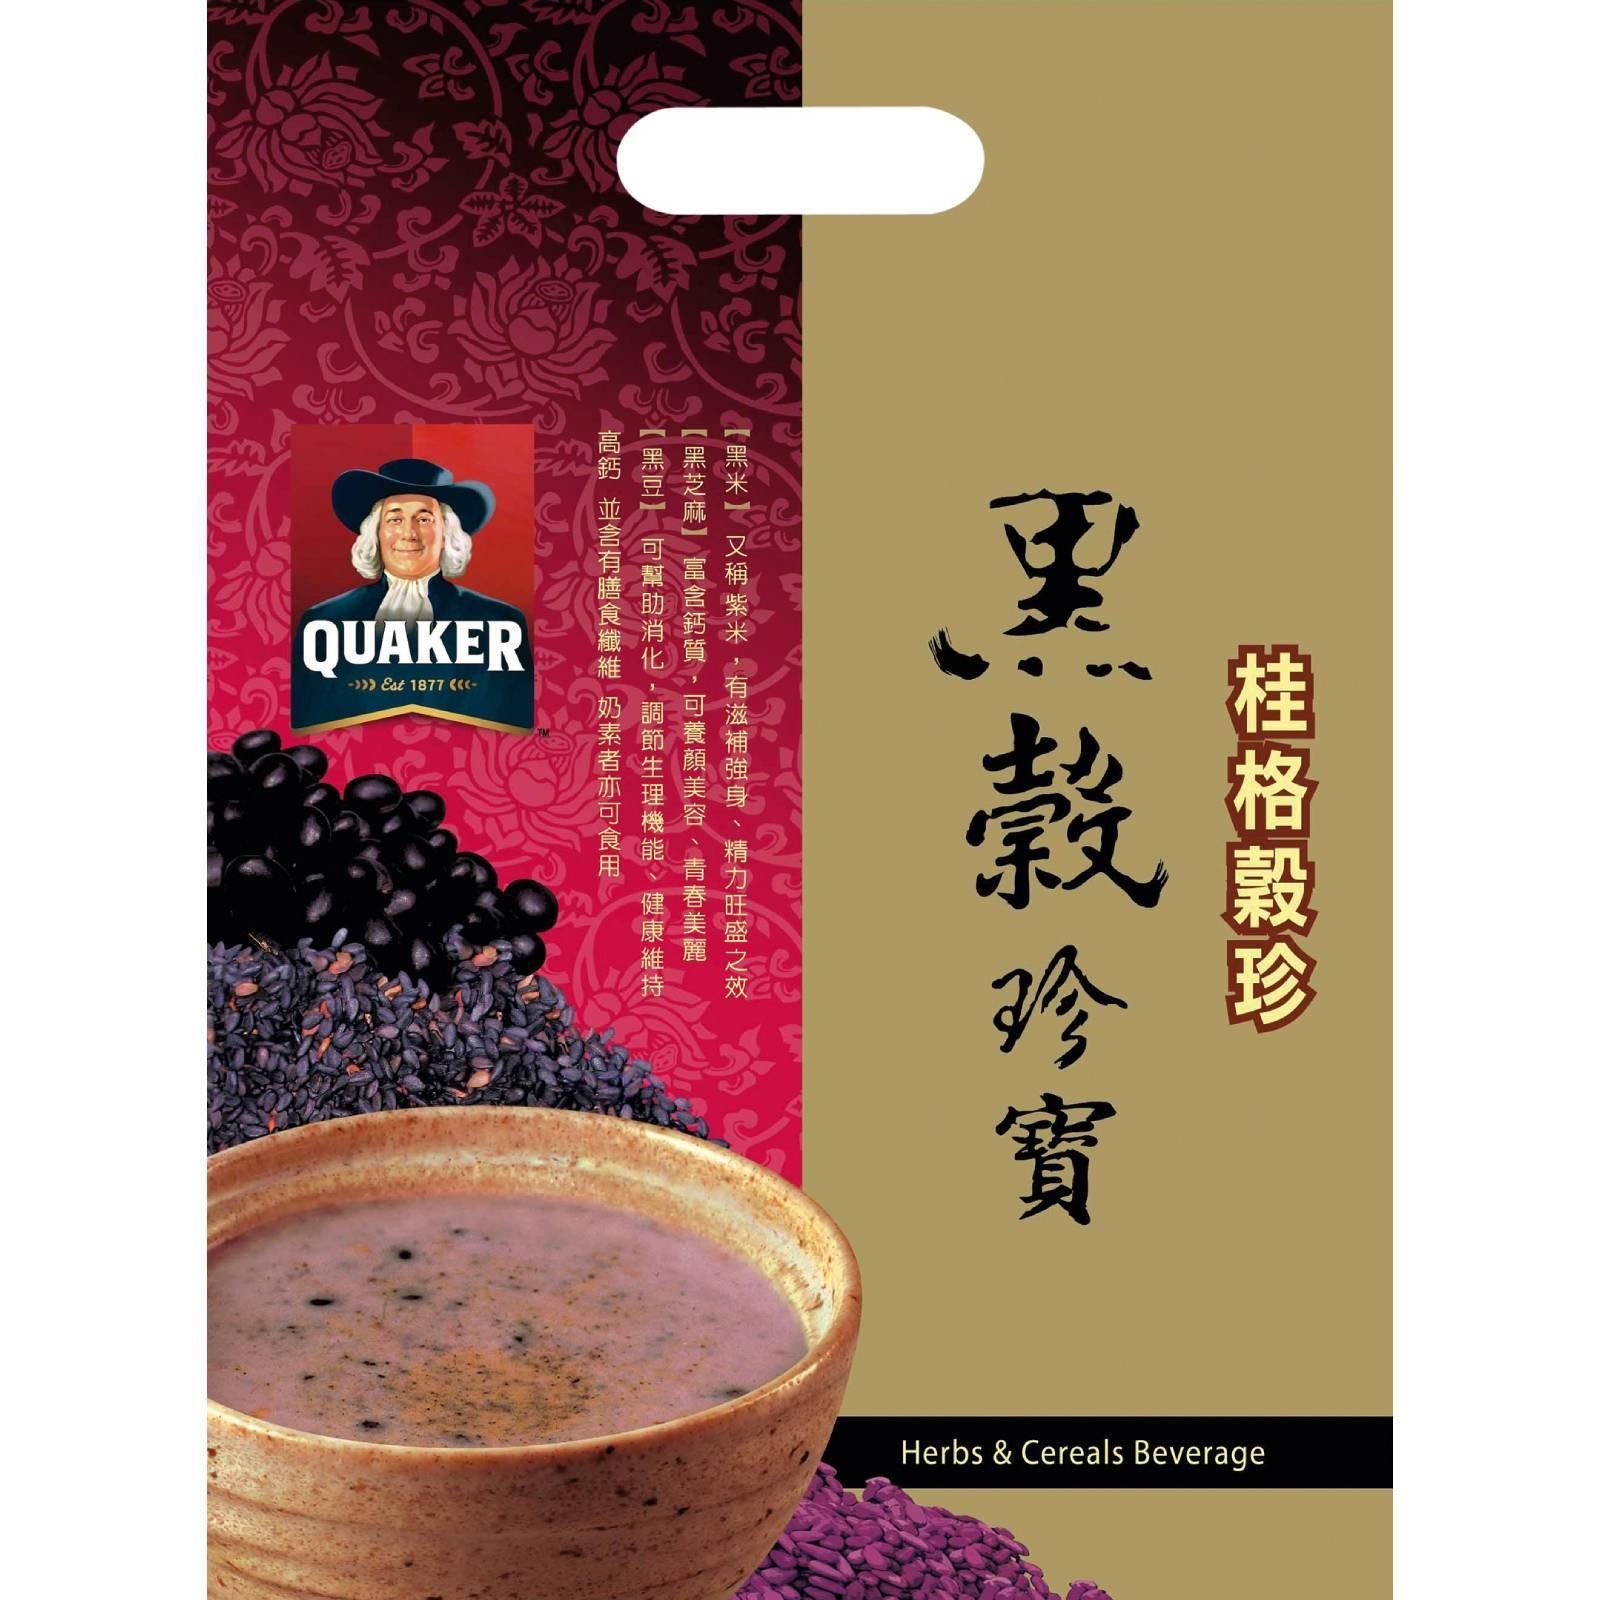 QUAKER Black Soy Bean Dark Sesame and Black Rice Cereal Beverage